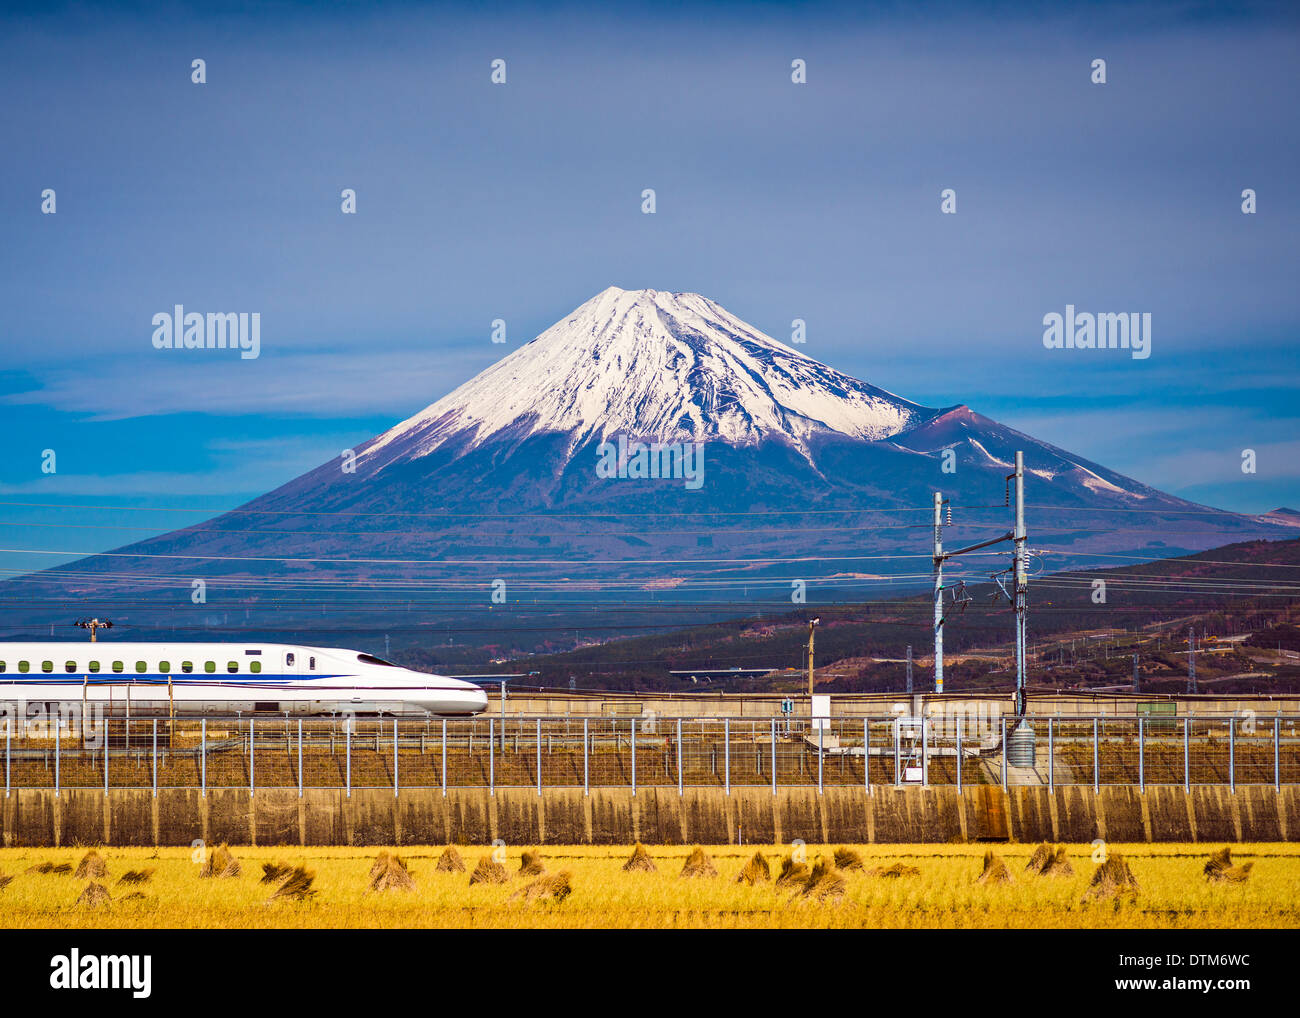 Mt. Fuji au Japon avec un train ci-dessous. Photo Stock